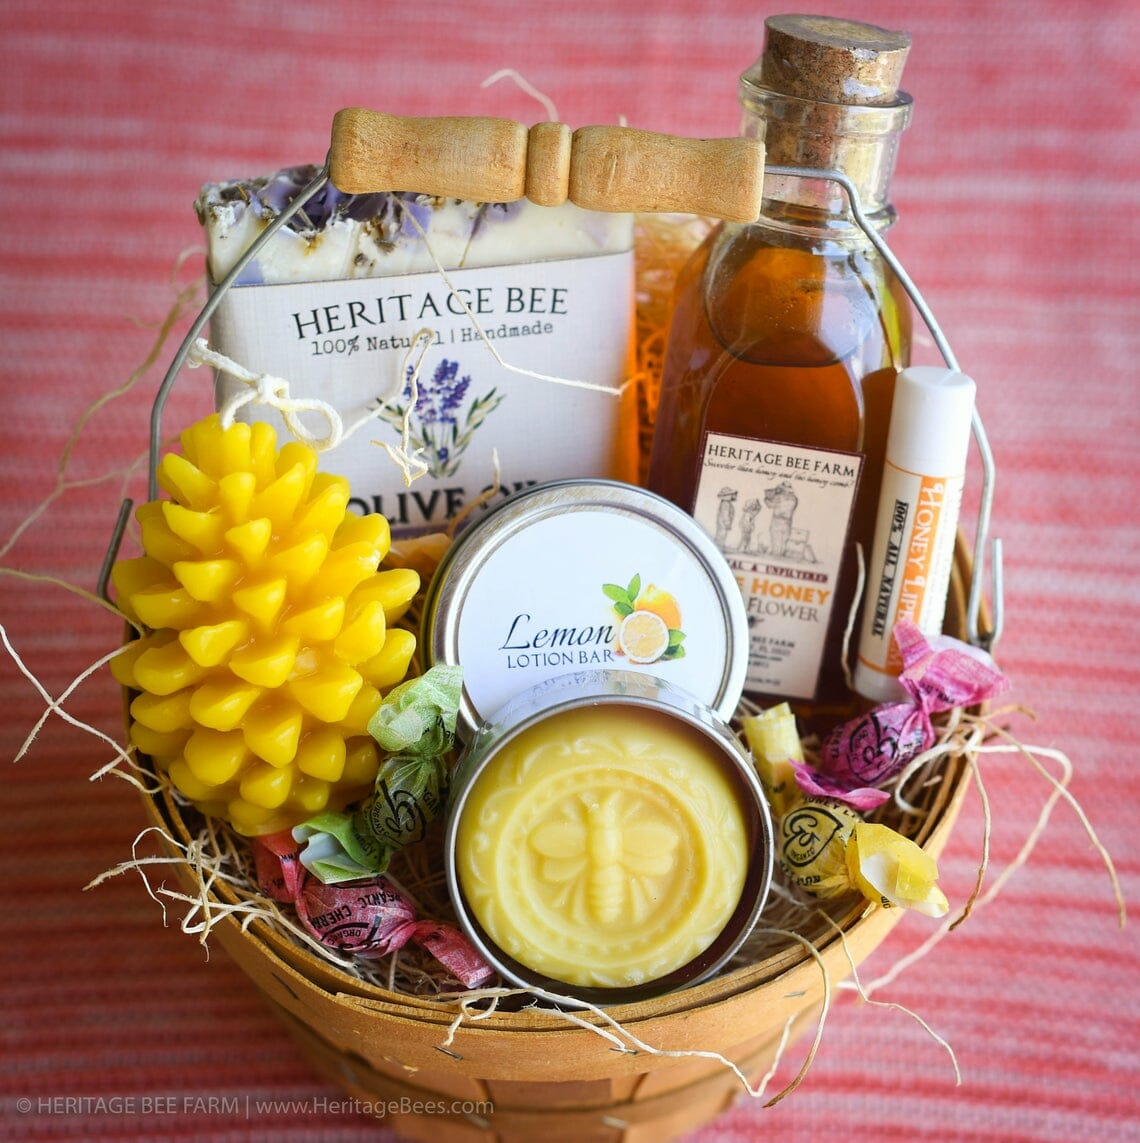 Gift basket of bee-related self-care gifts.